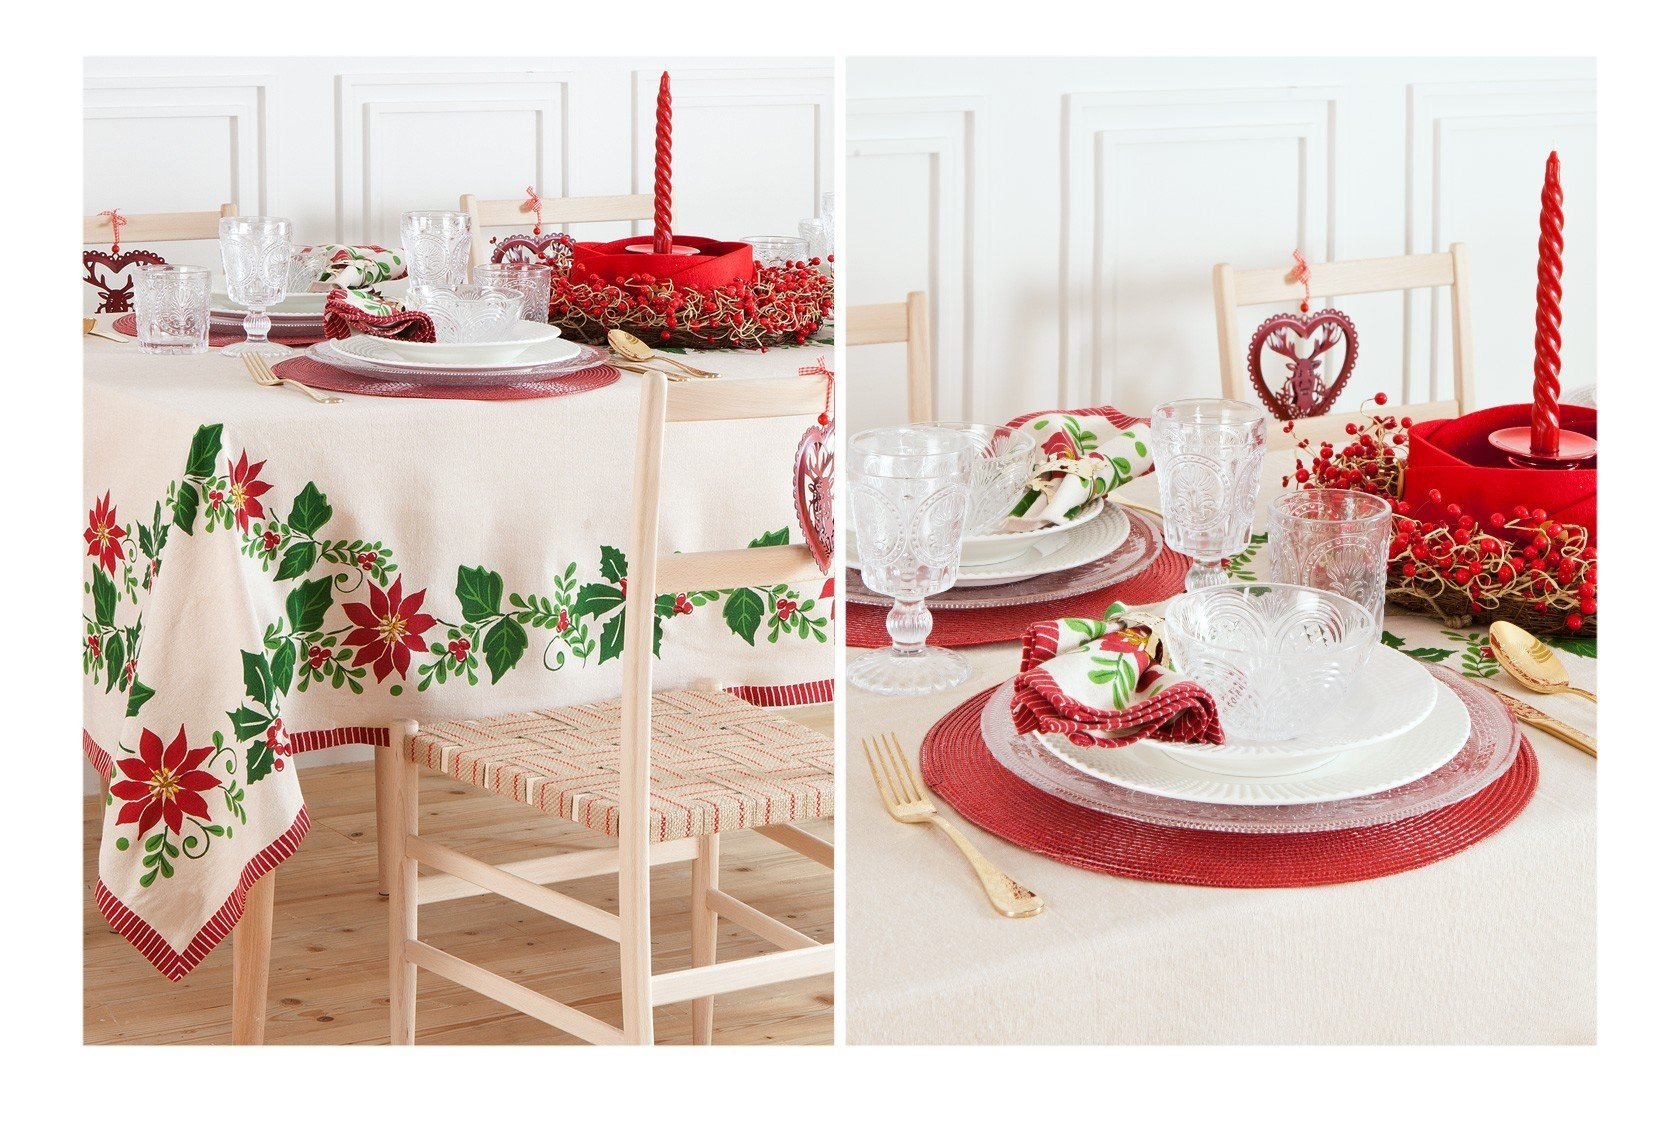 Zara home decorazioni per il natale 2013 rose in the wind - Decorazioni per il natale ...